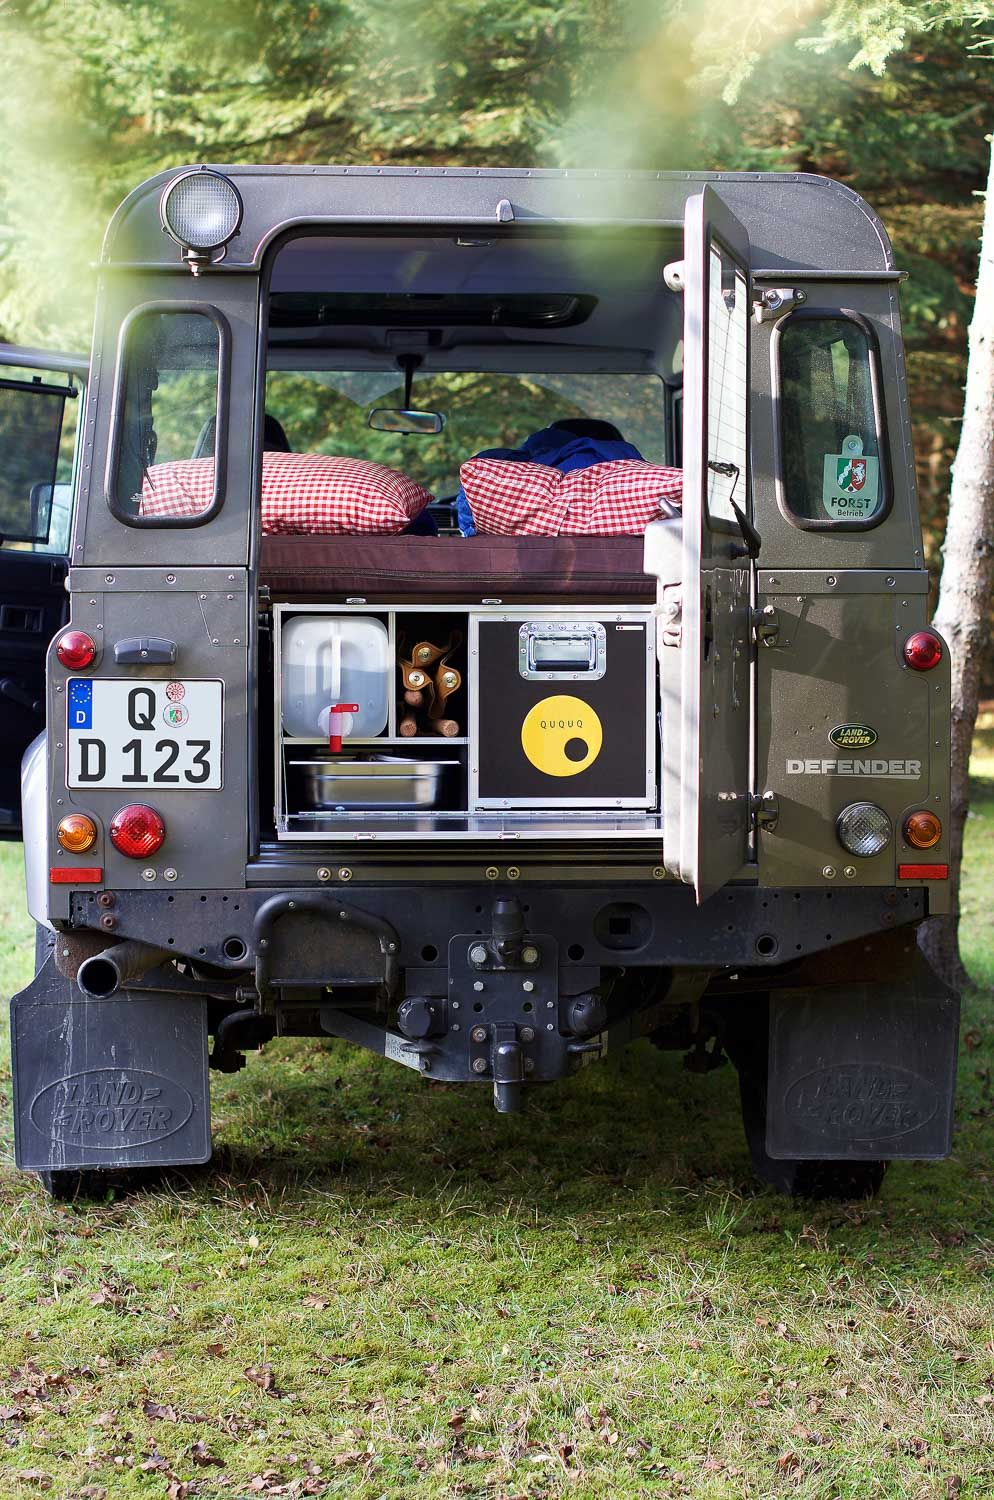 ququq land rover defender camping ausbau 4x4 jeep camper. Black Bedroom Furniture Sets. Home Design Ideas